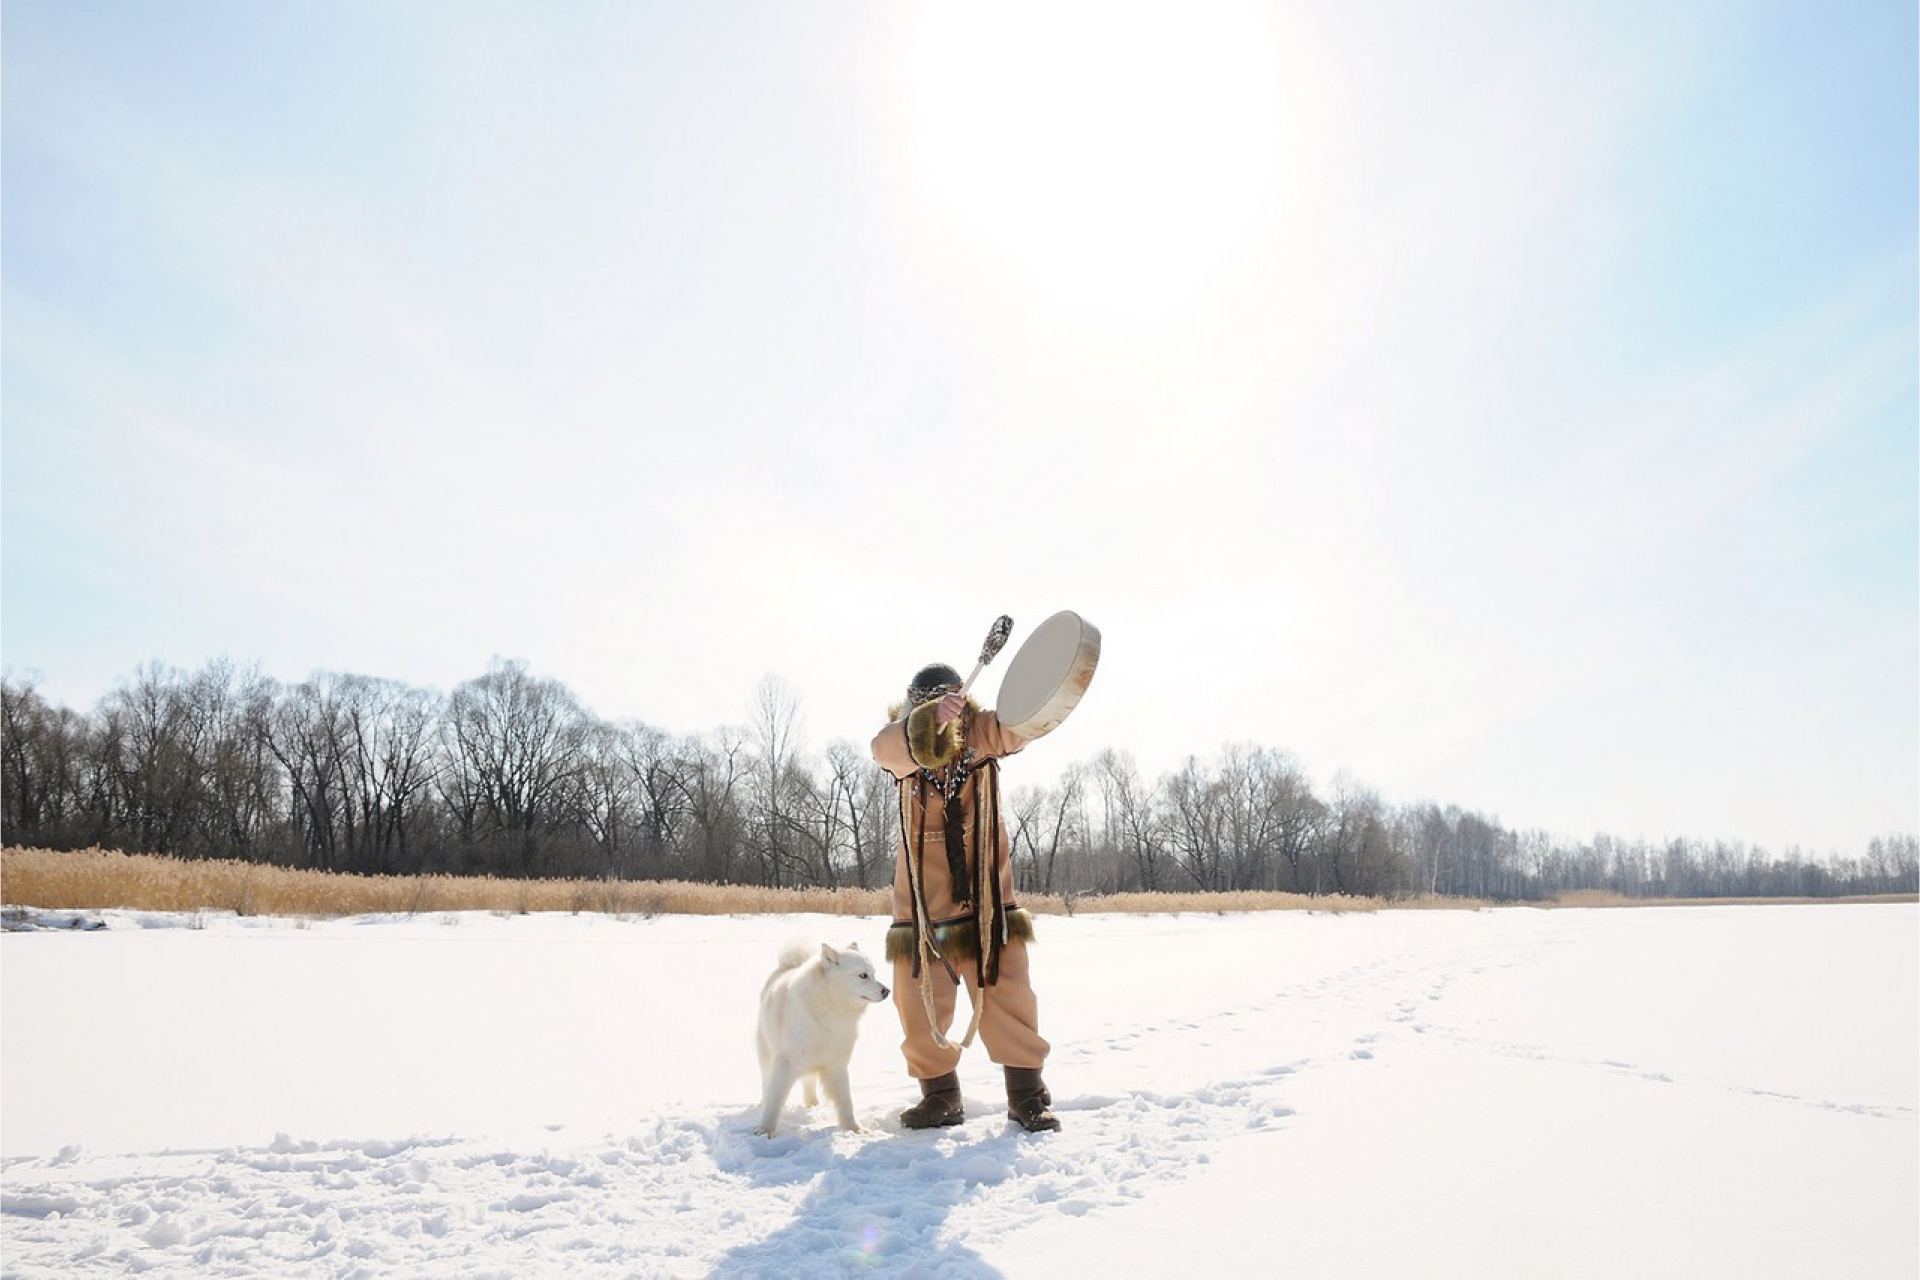 A Shaman with a tambour and his dog in a winter landscape